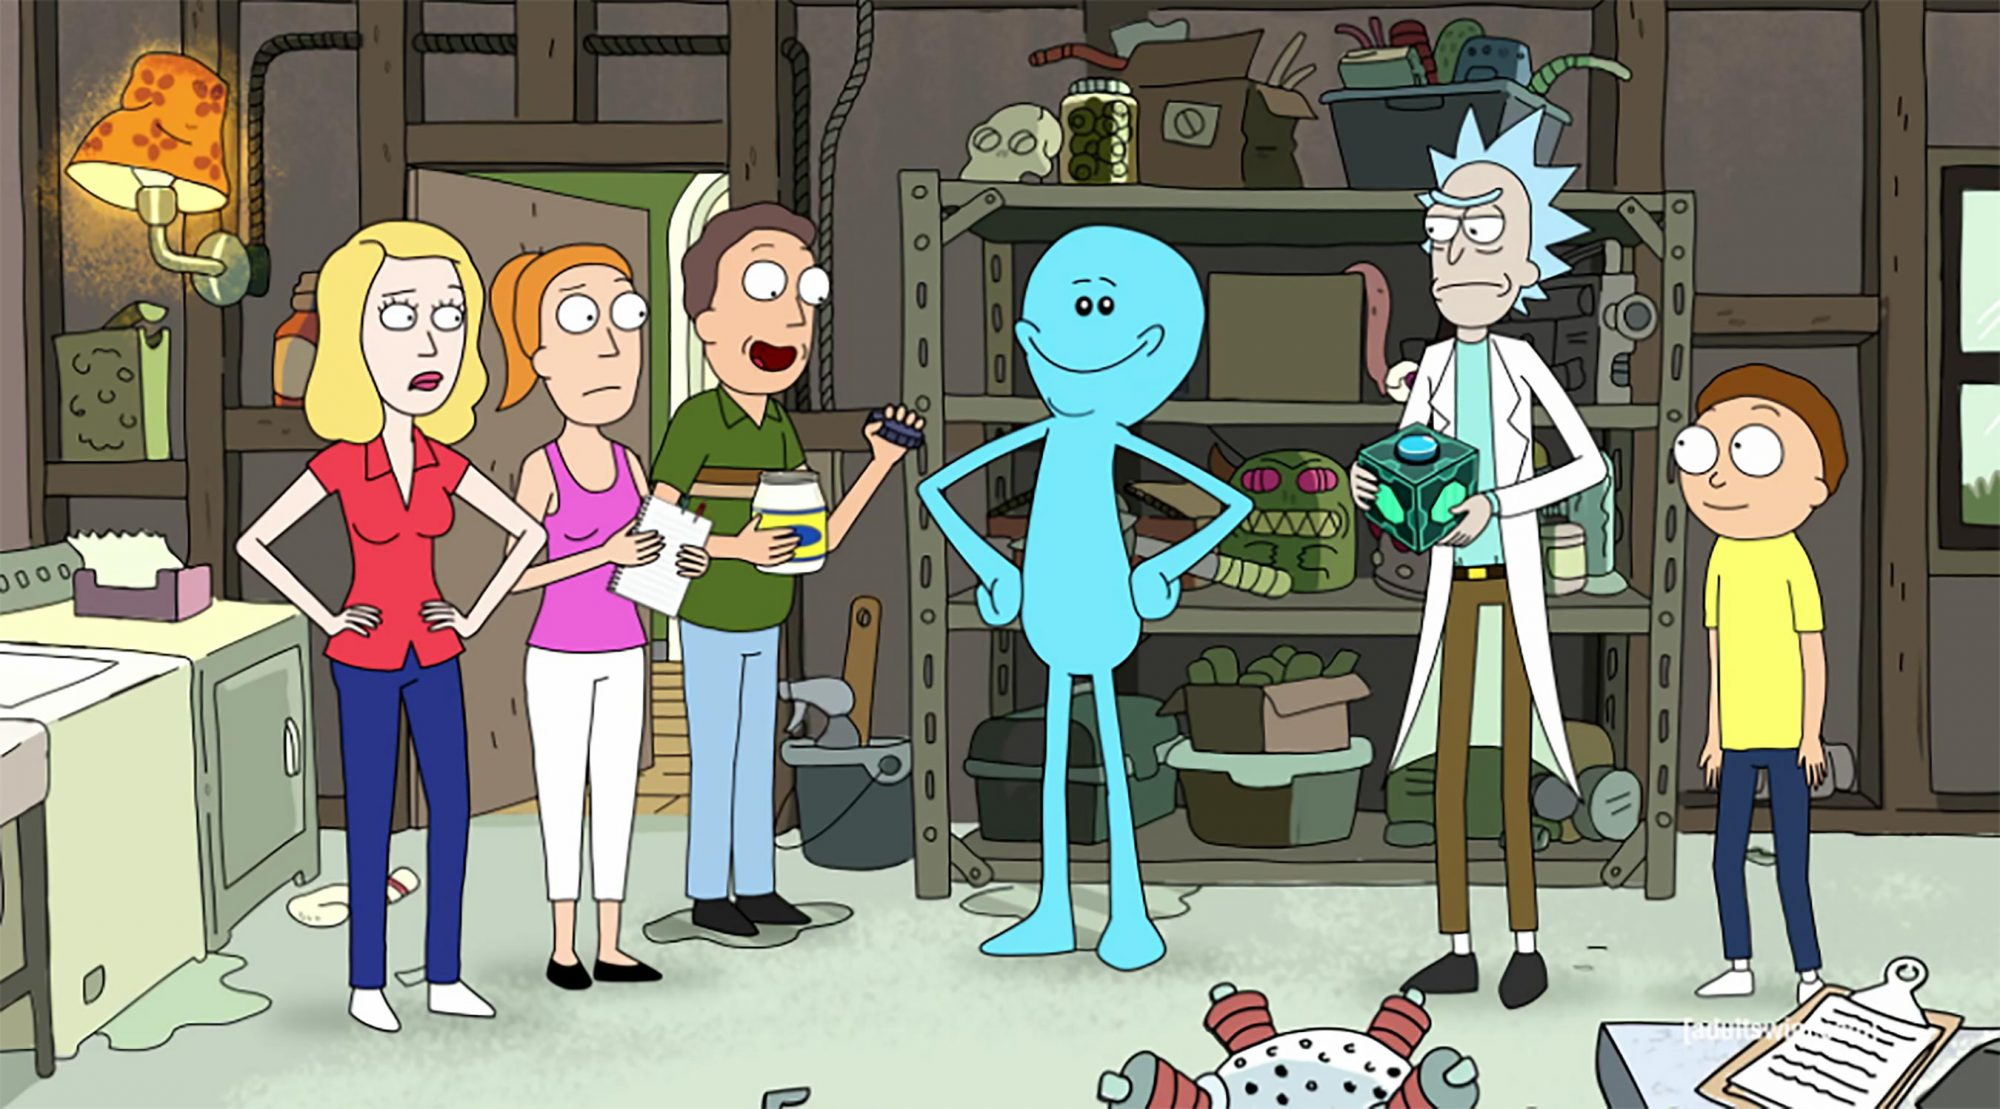 Ricky and Morty - Mr. Meeseeks (Season 1, Episode 5)